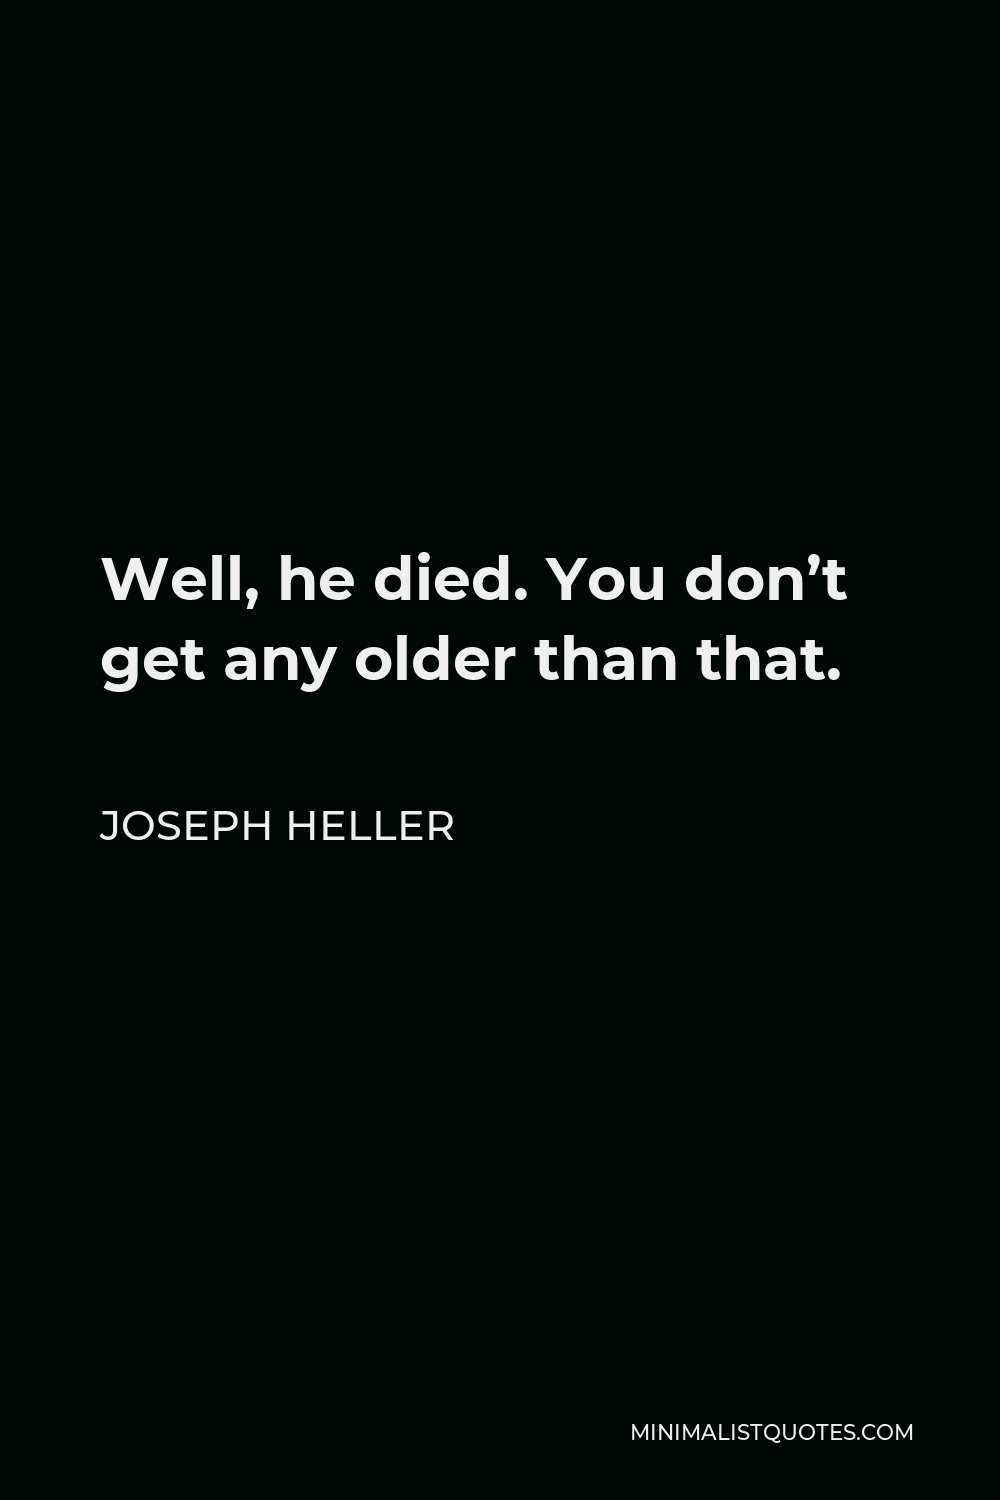 Joseph Heller Quote - Well, he died. You don't get any older than that.